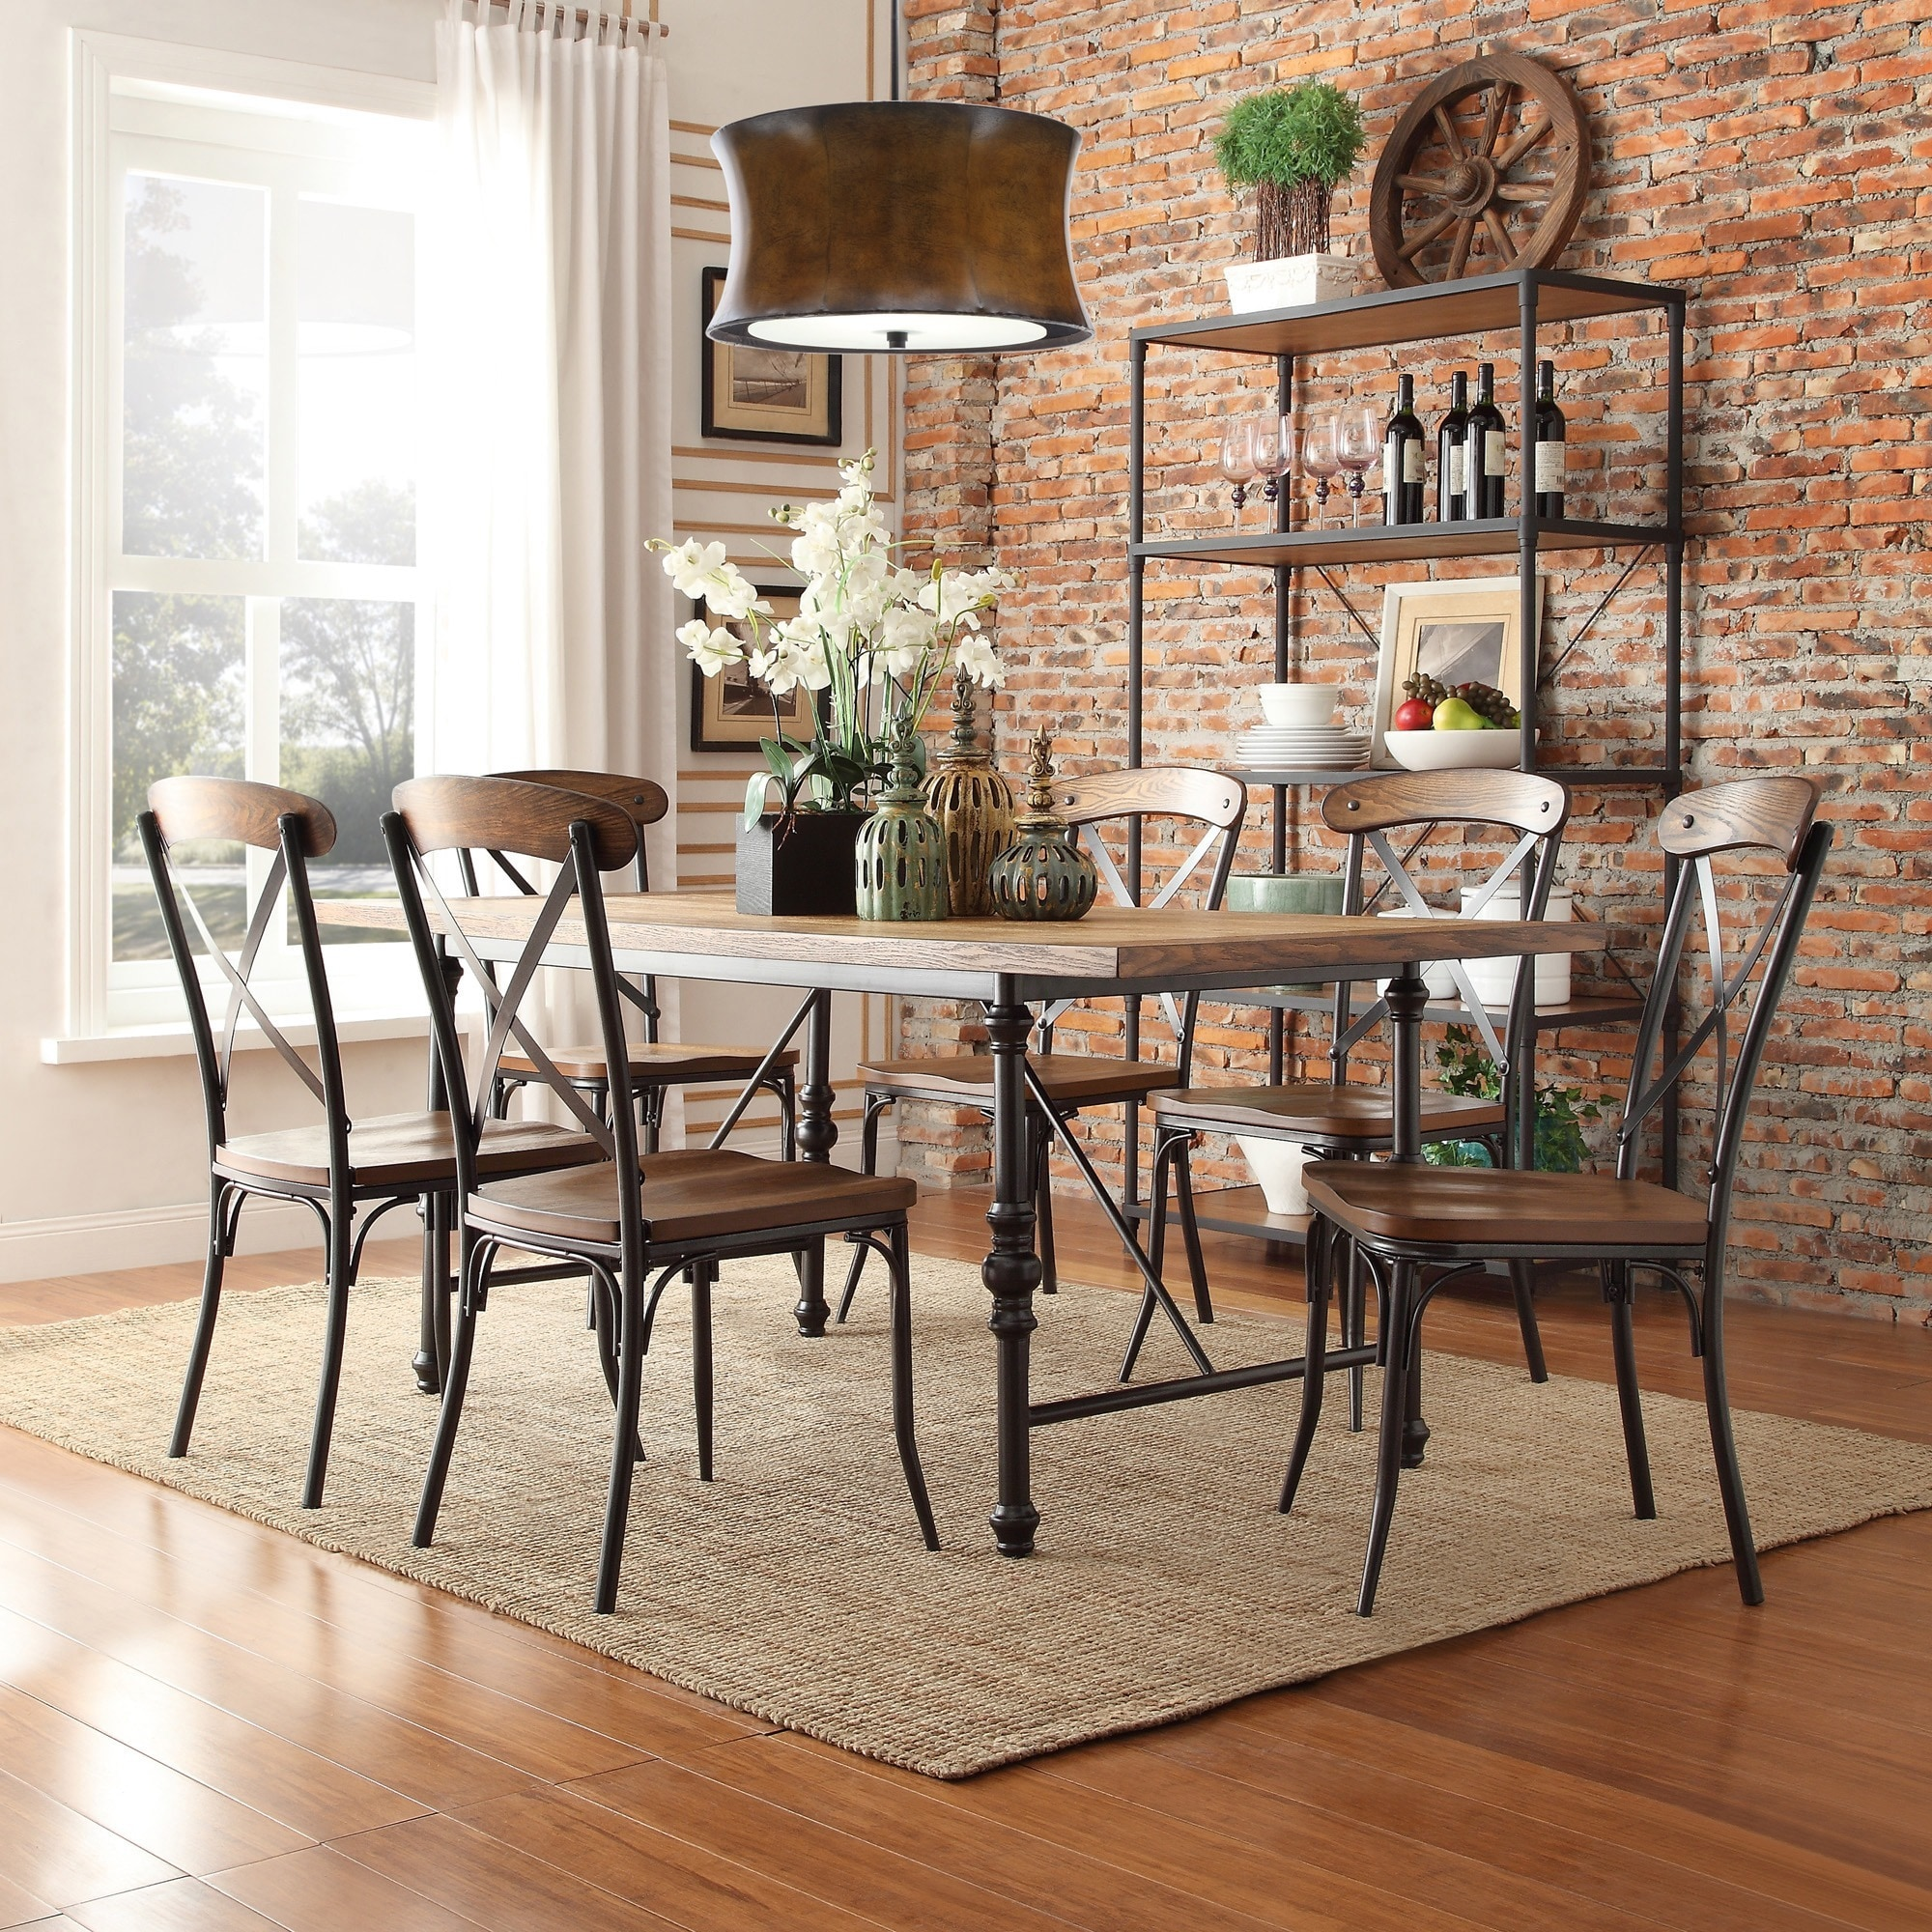 Shop nelson industrial modern rustic cross back dining chair by inspire q classic set of 2 on sale free shipping today overstock com 8785043